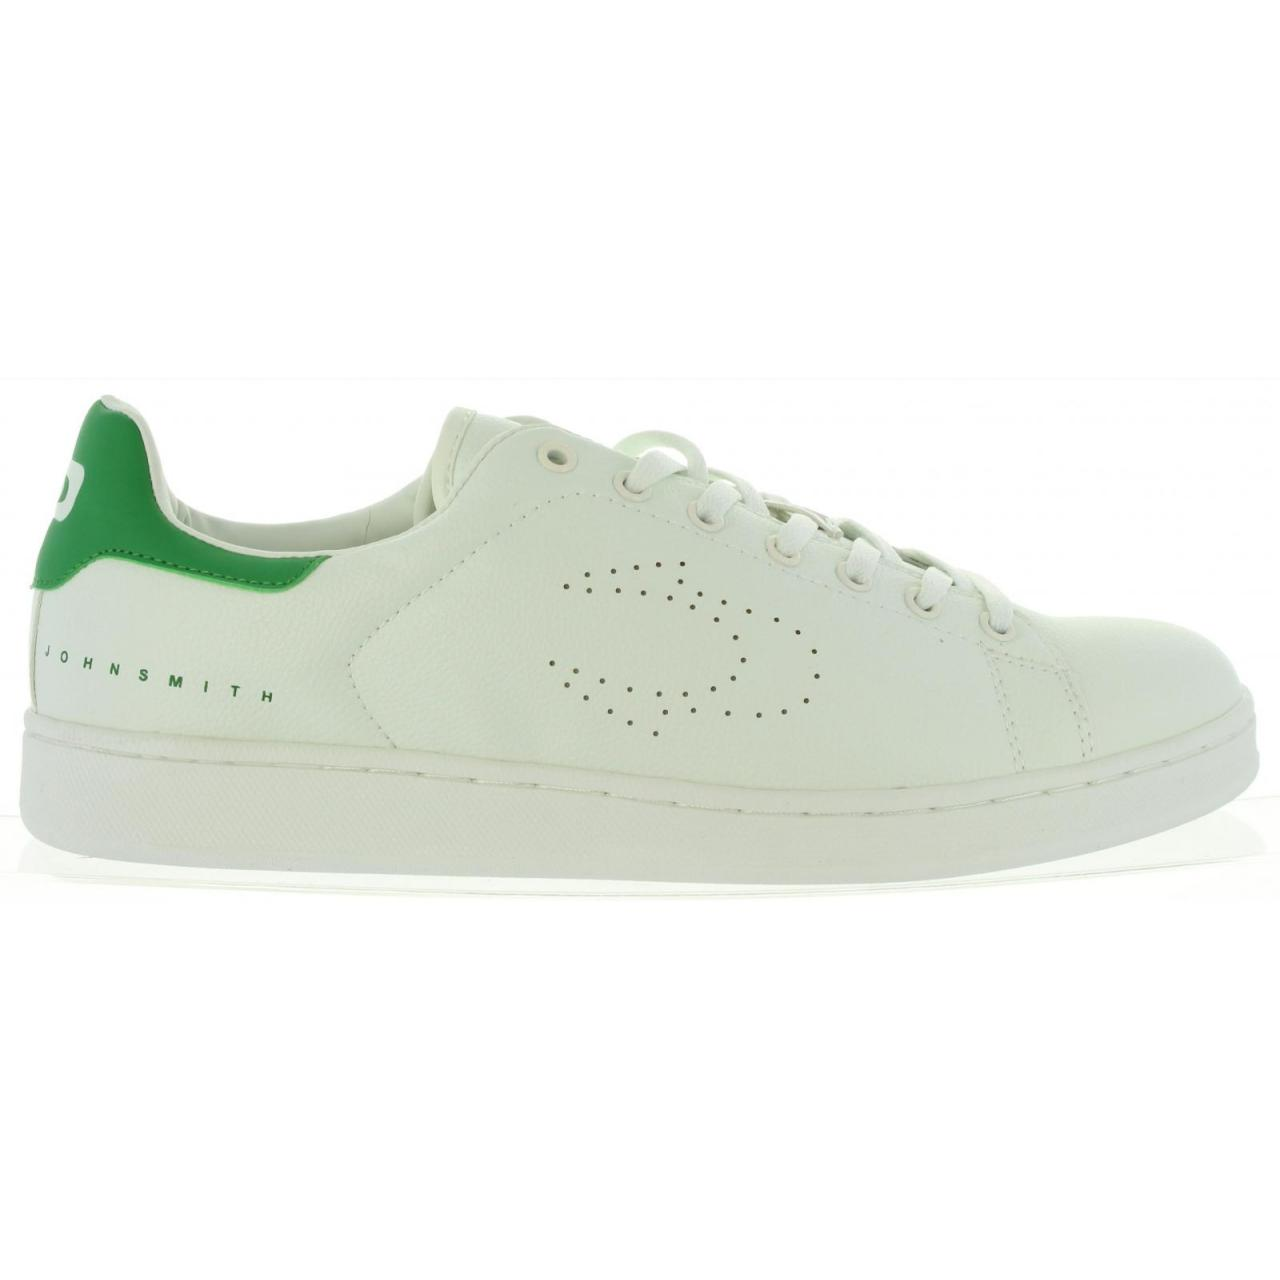 Zapatillas John Smith 17iEbay Deporte Verde Corum rhdCQts